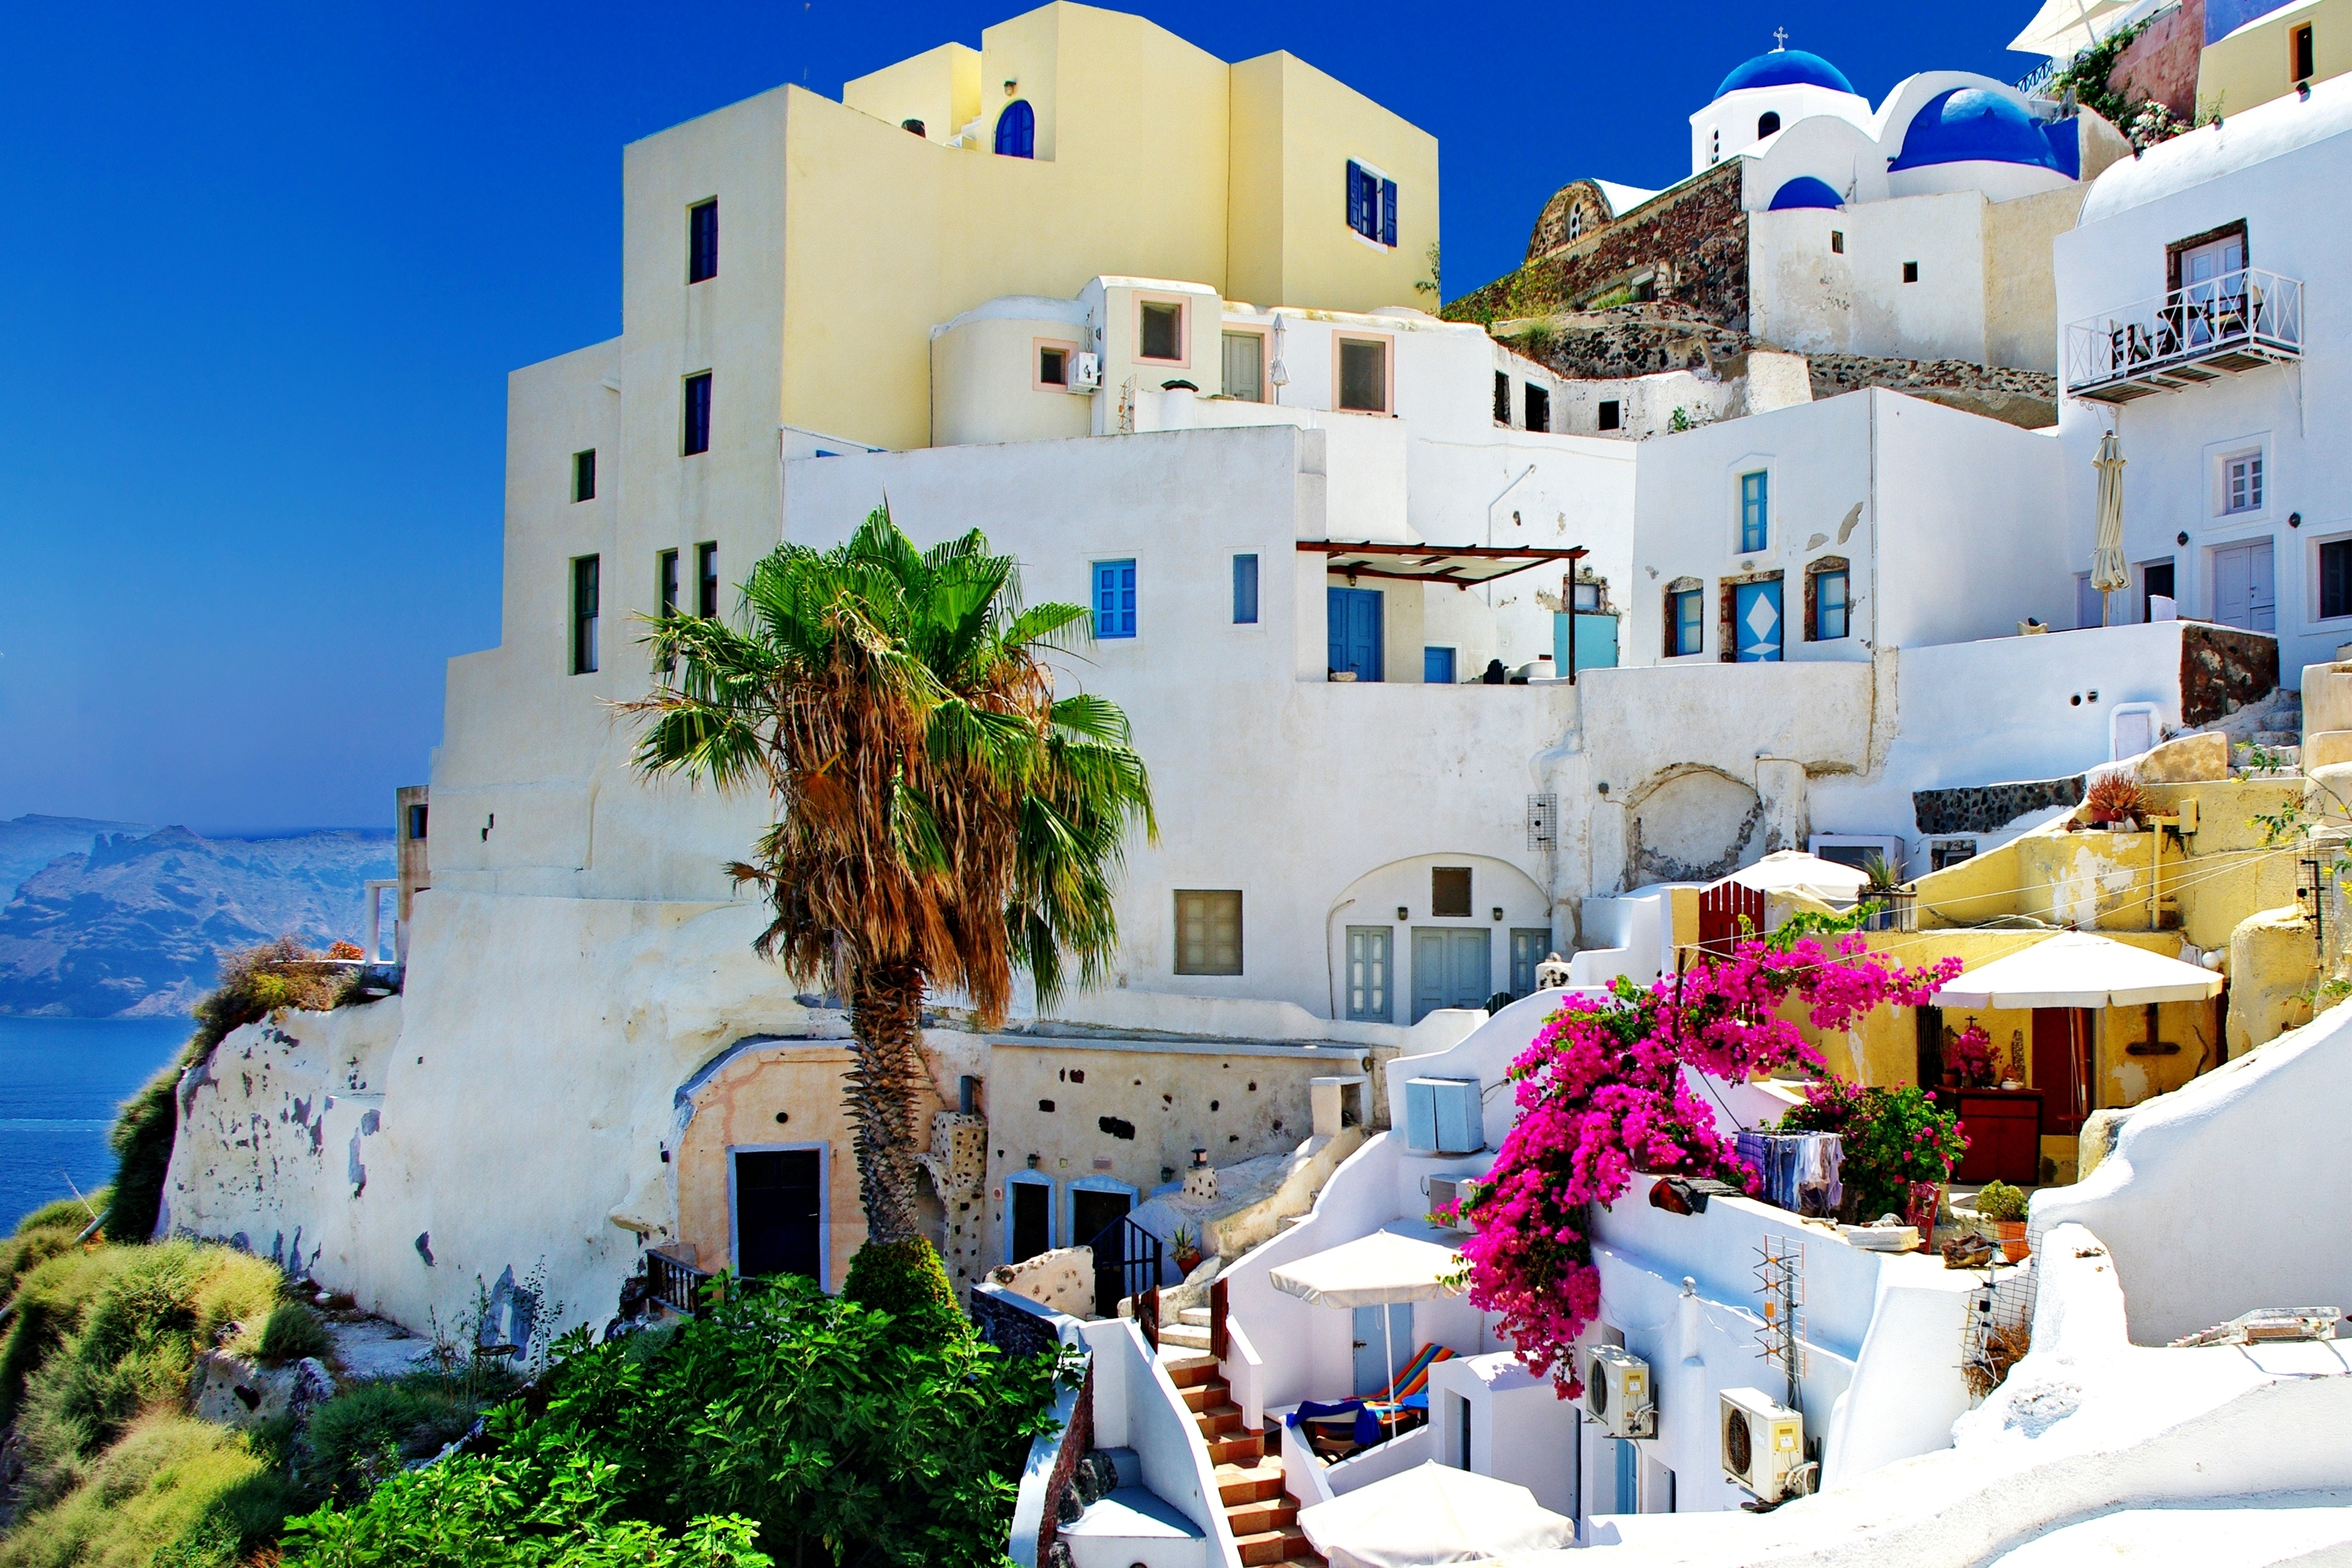 74 Santorini HD Wallpapers Background Images 3000x2000